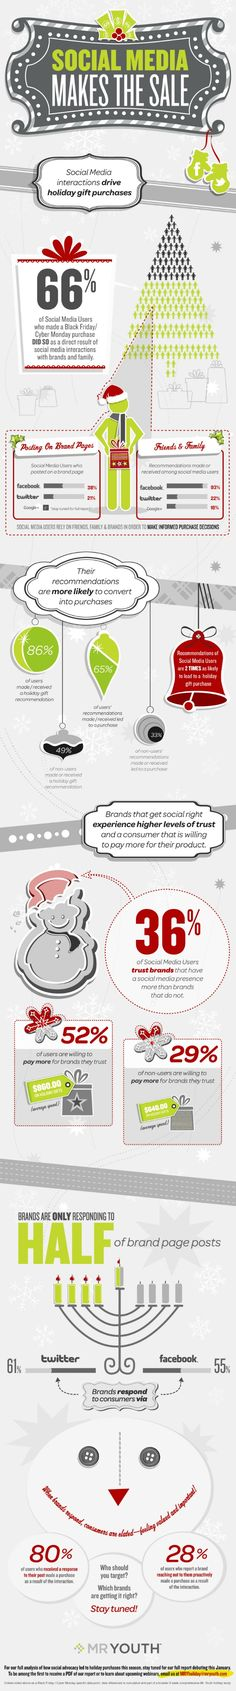 "Infographic: Social Media Holiday Purchases -- From 2011, but still interesting findings ""that social media has been a key driver of Christmas gift purchases..."""